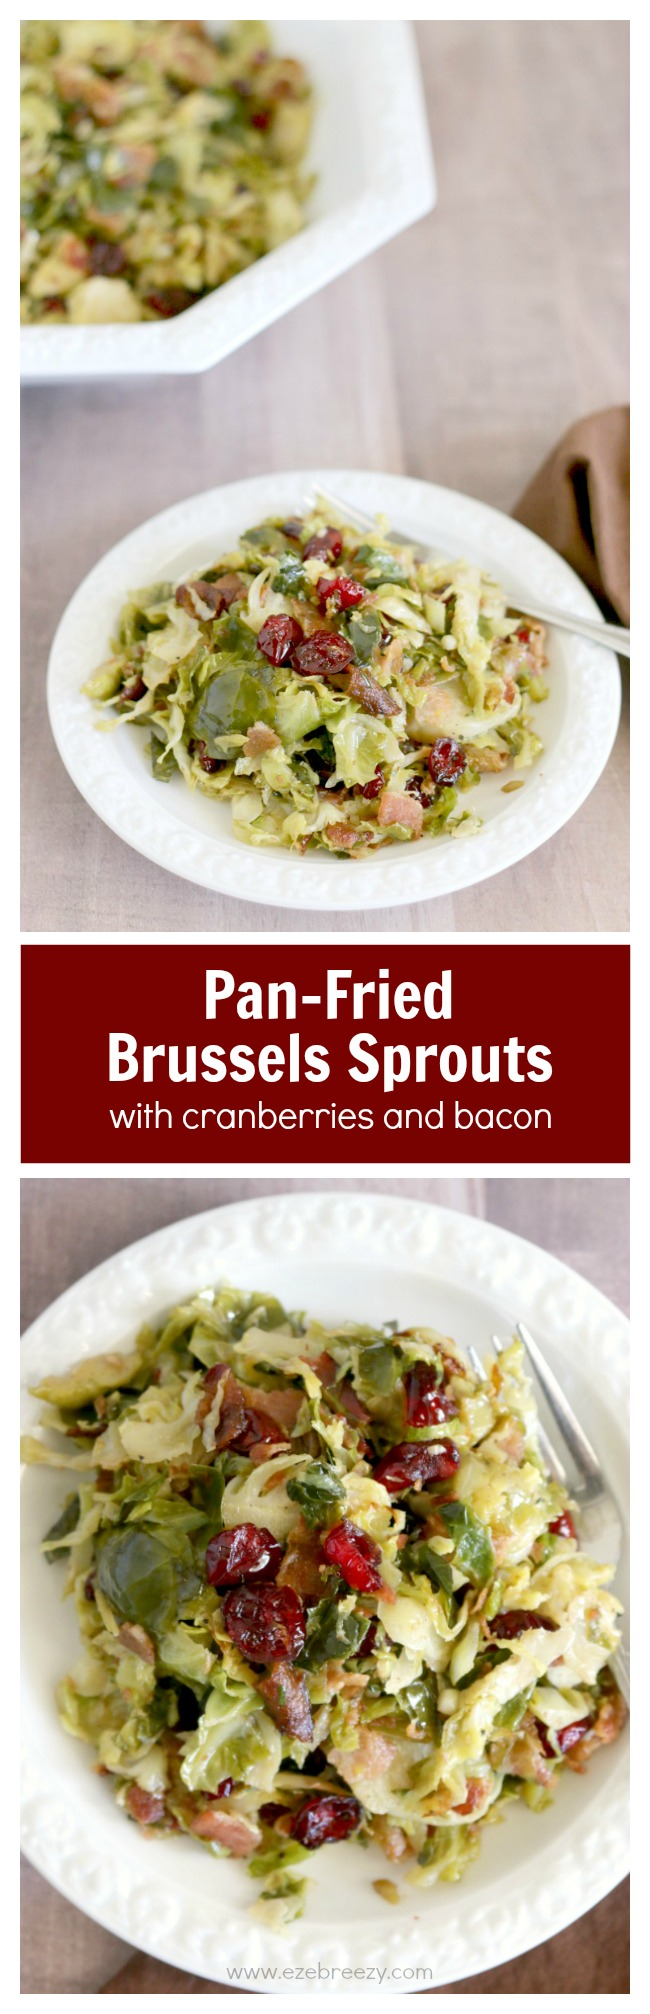 Pan Fried Brussels Sprouts With Cranberries And Bacon